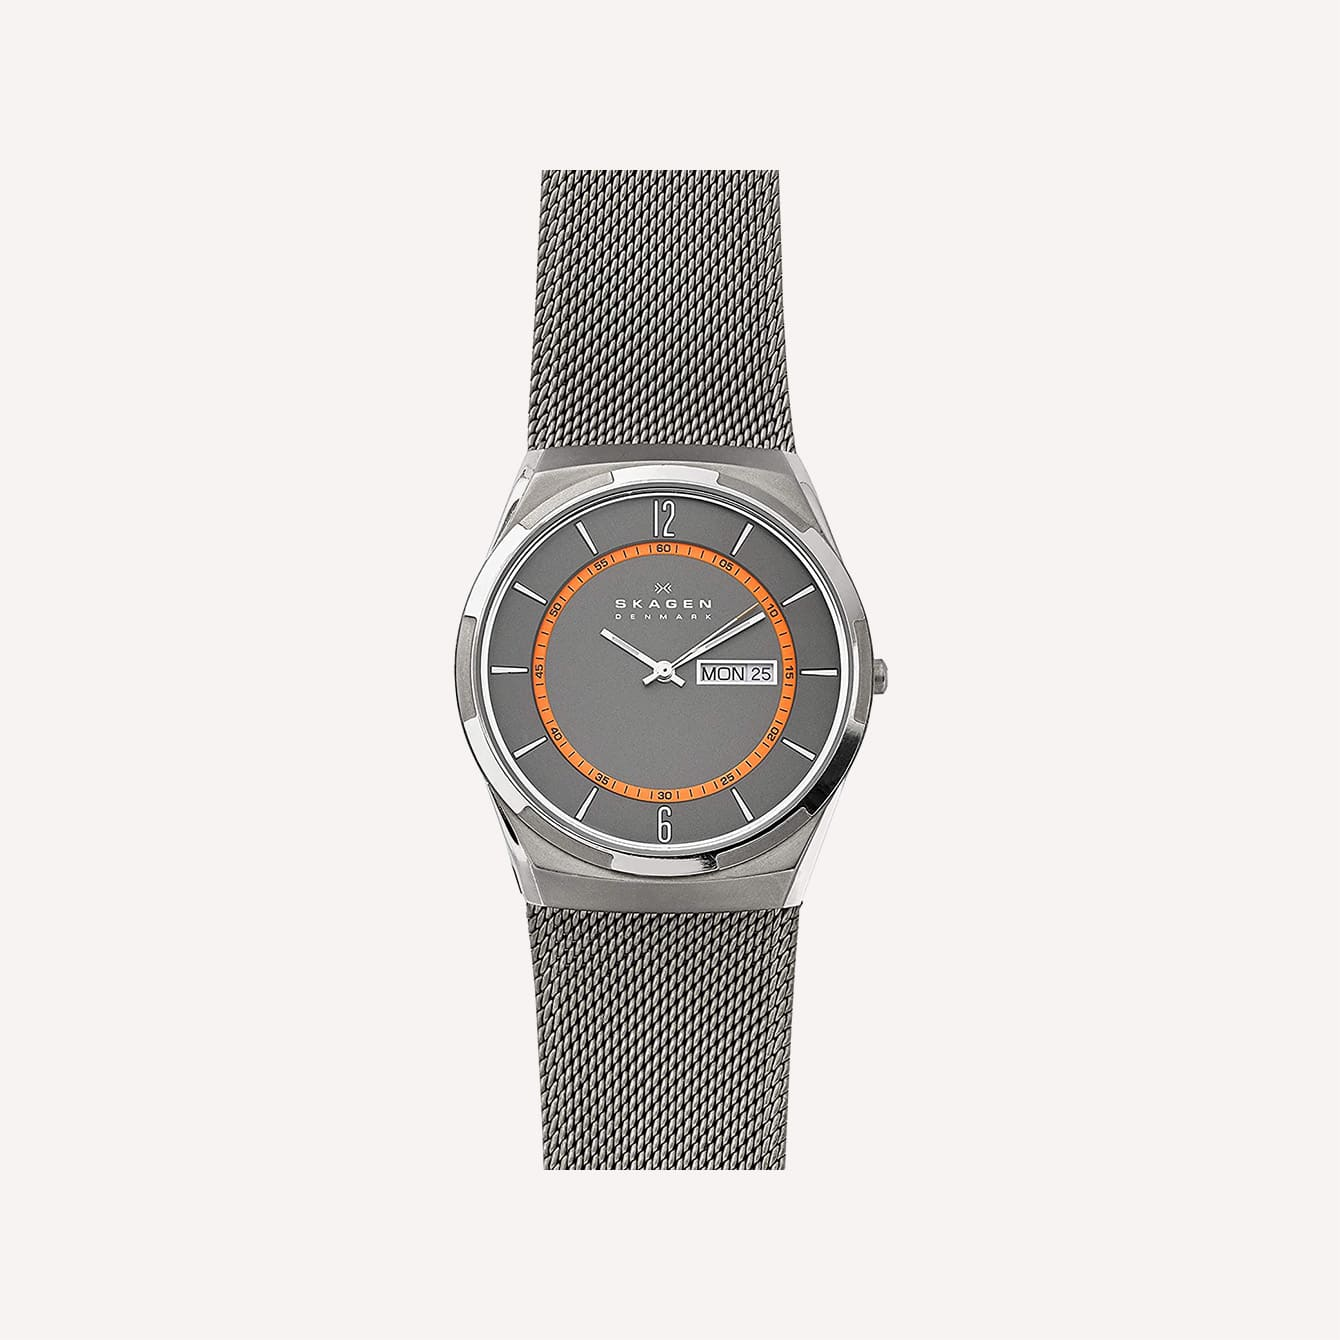 Baton and Stick Hands Skagen Melbye Three Hand Watch with Stainless Steel Mesh Band